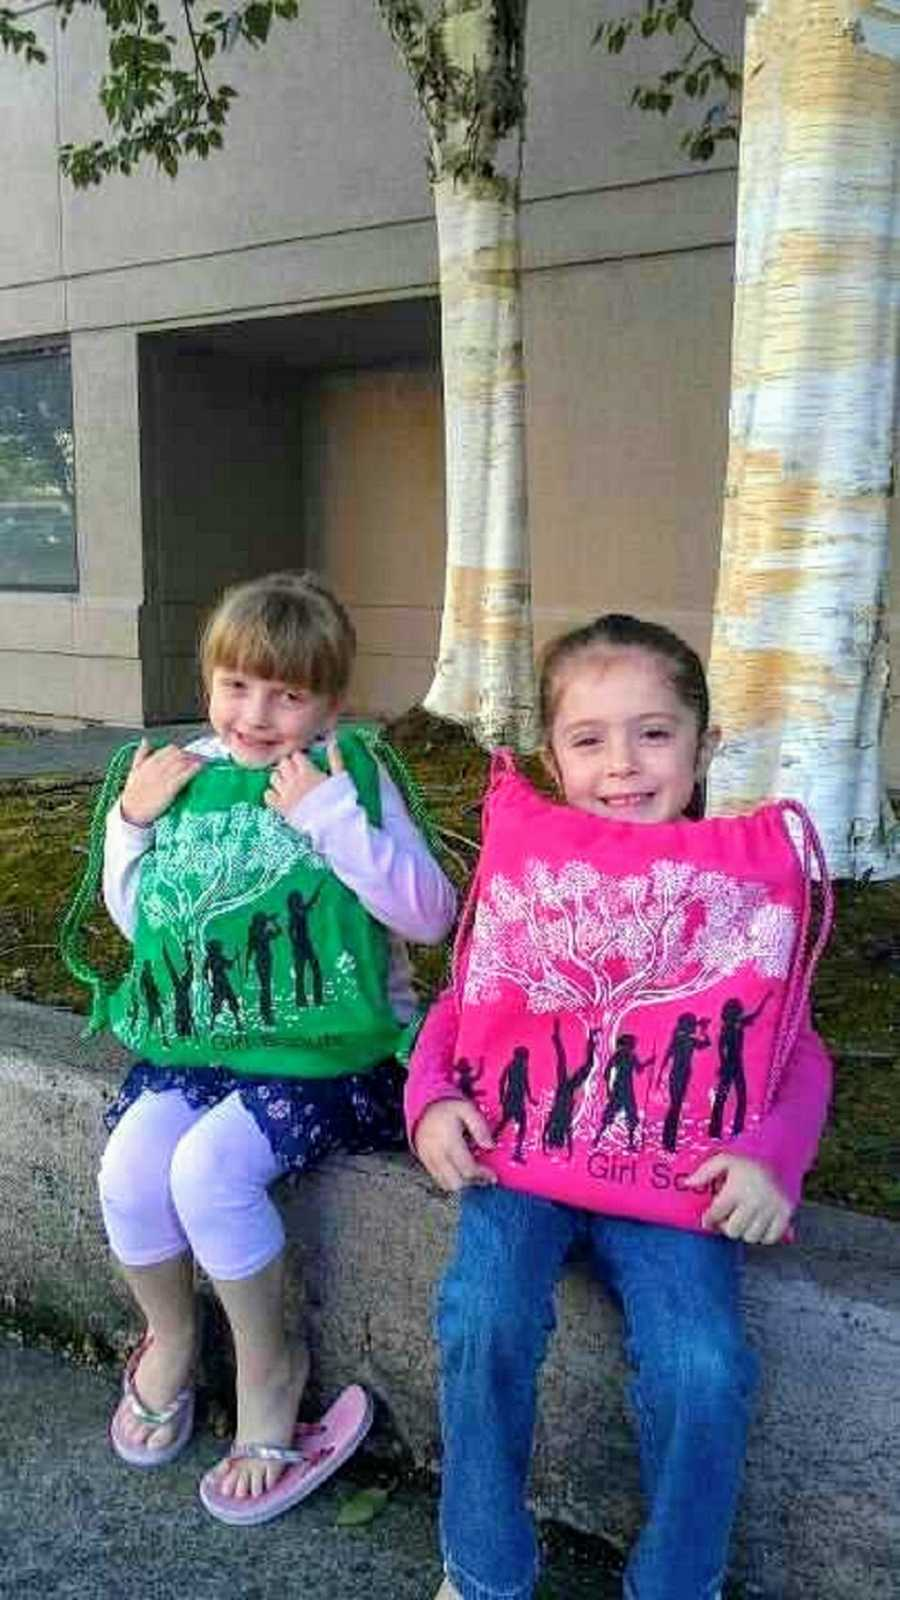 Adoptive sisters hold up pink and green bags